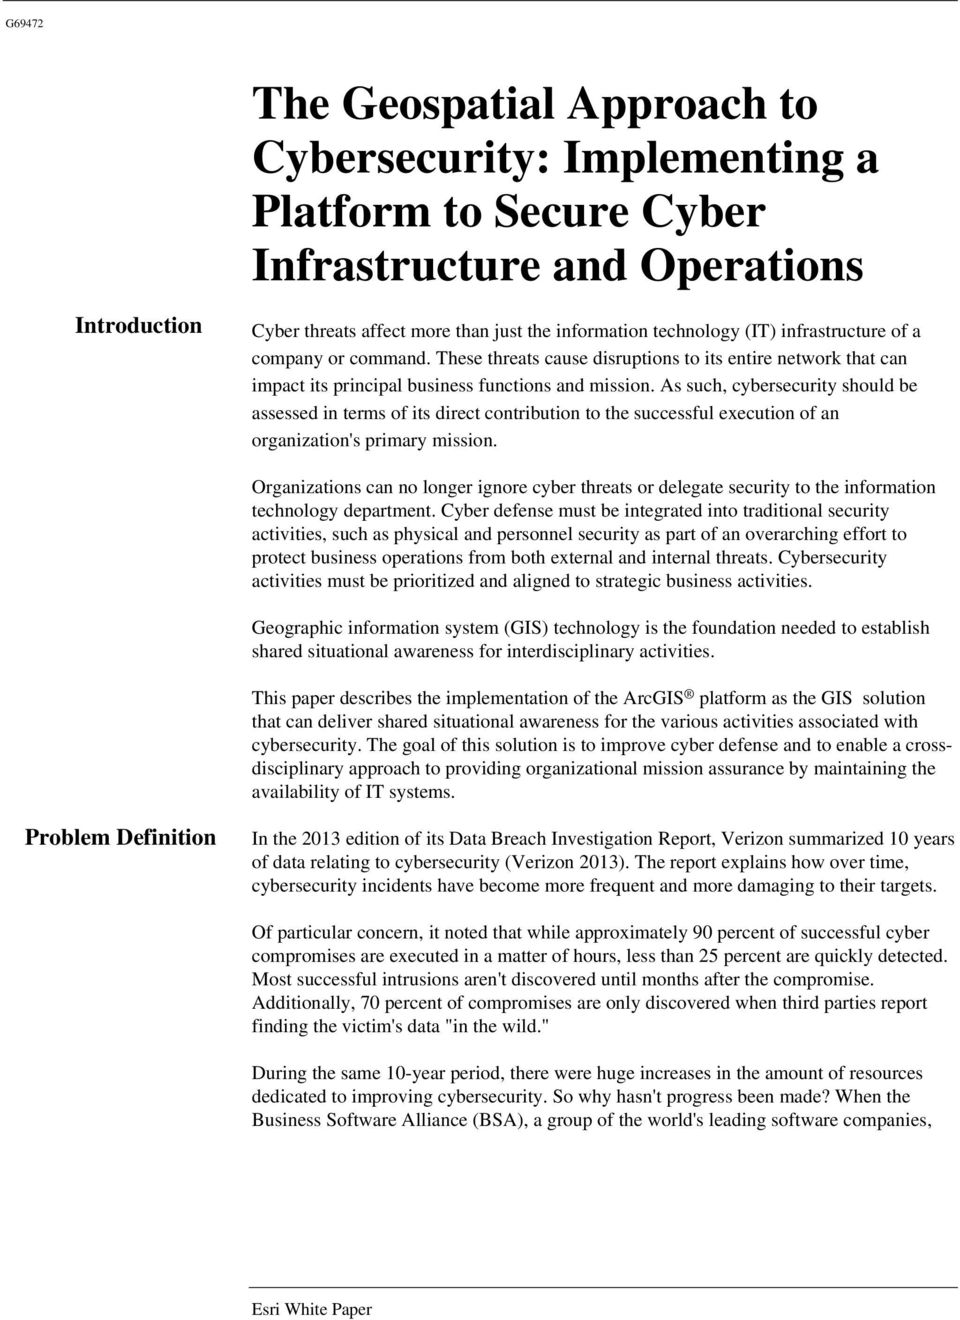 As such, cybersecurity should be assessed in terms of its direct contribution to the successful execution of an organization's primary mission.